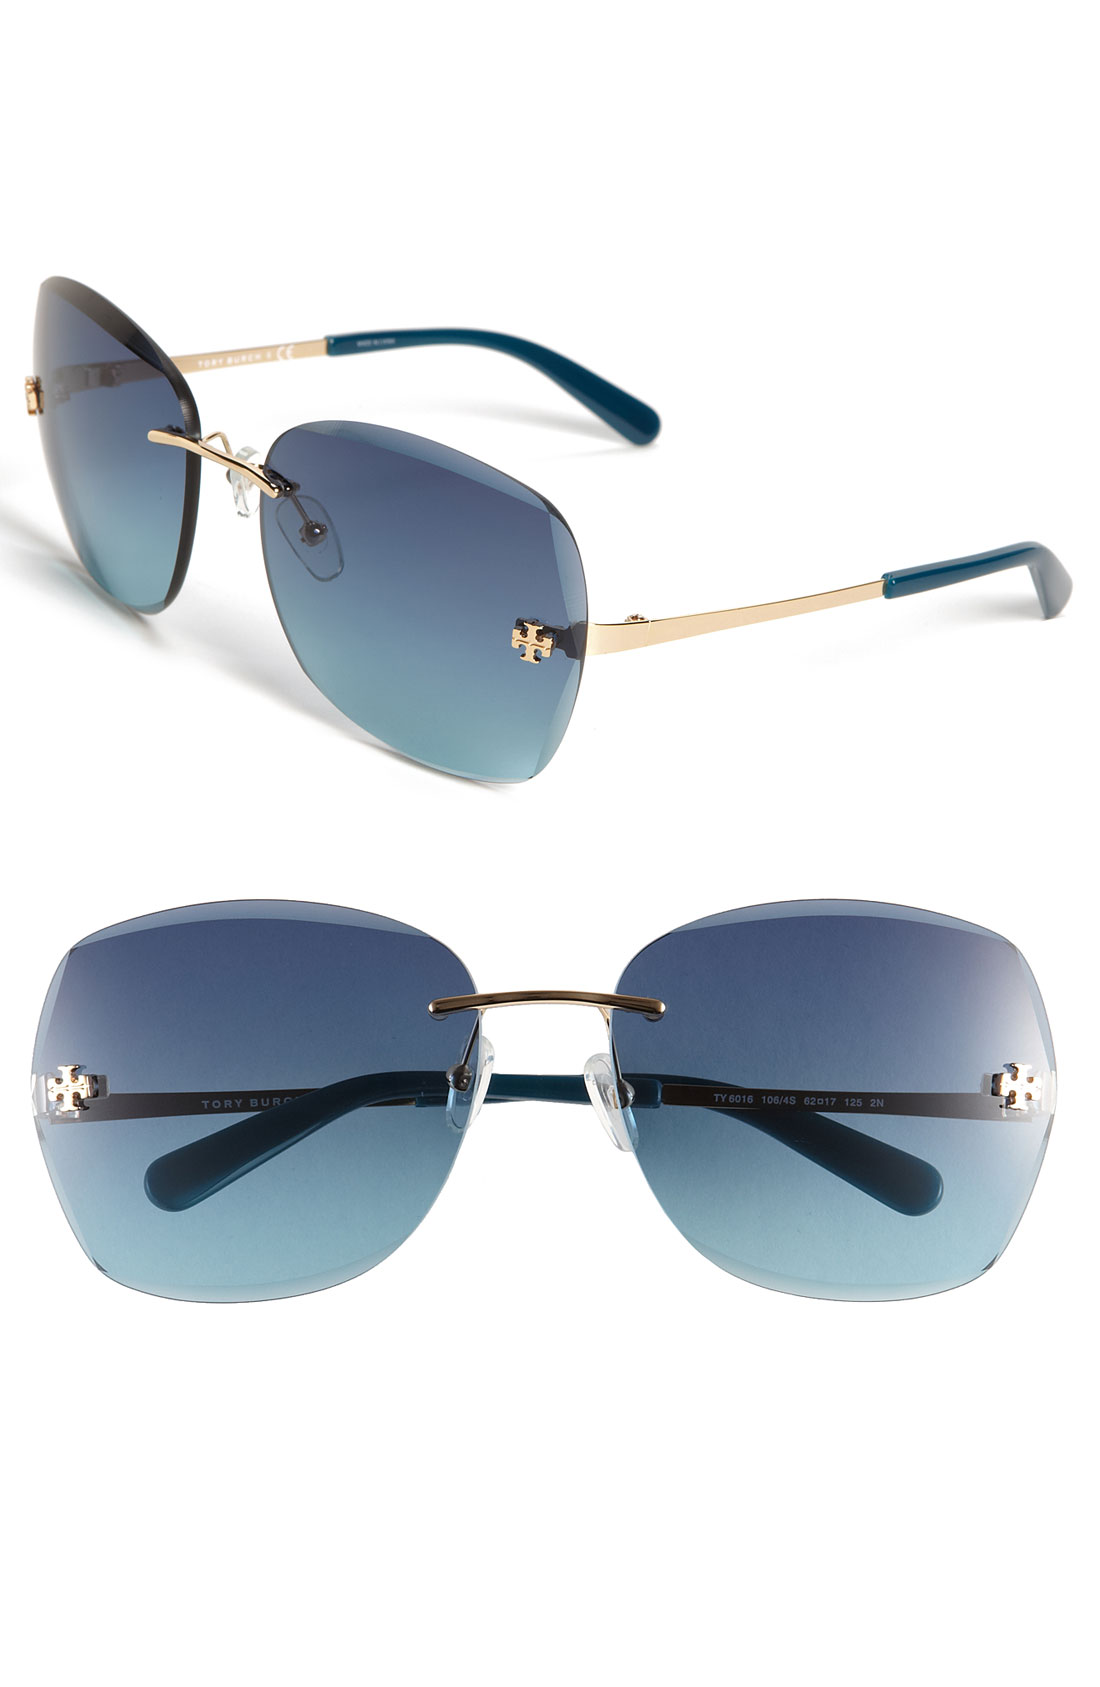 Tory Burch Rimless Sunglasses in Blue (gold/ blue teal) Lyst